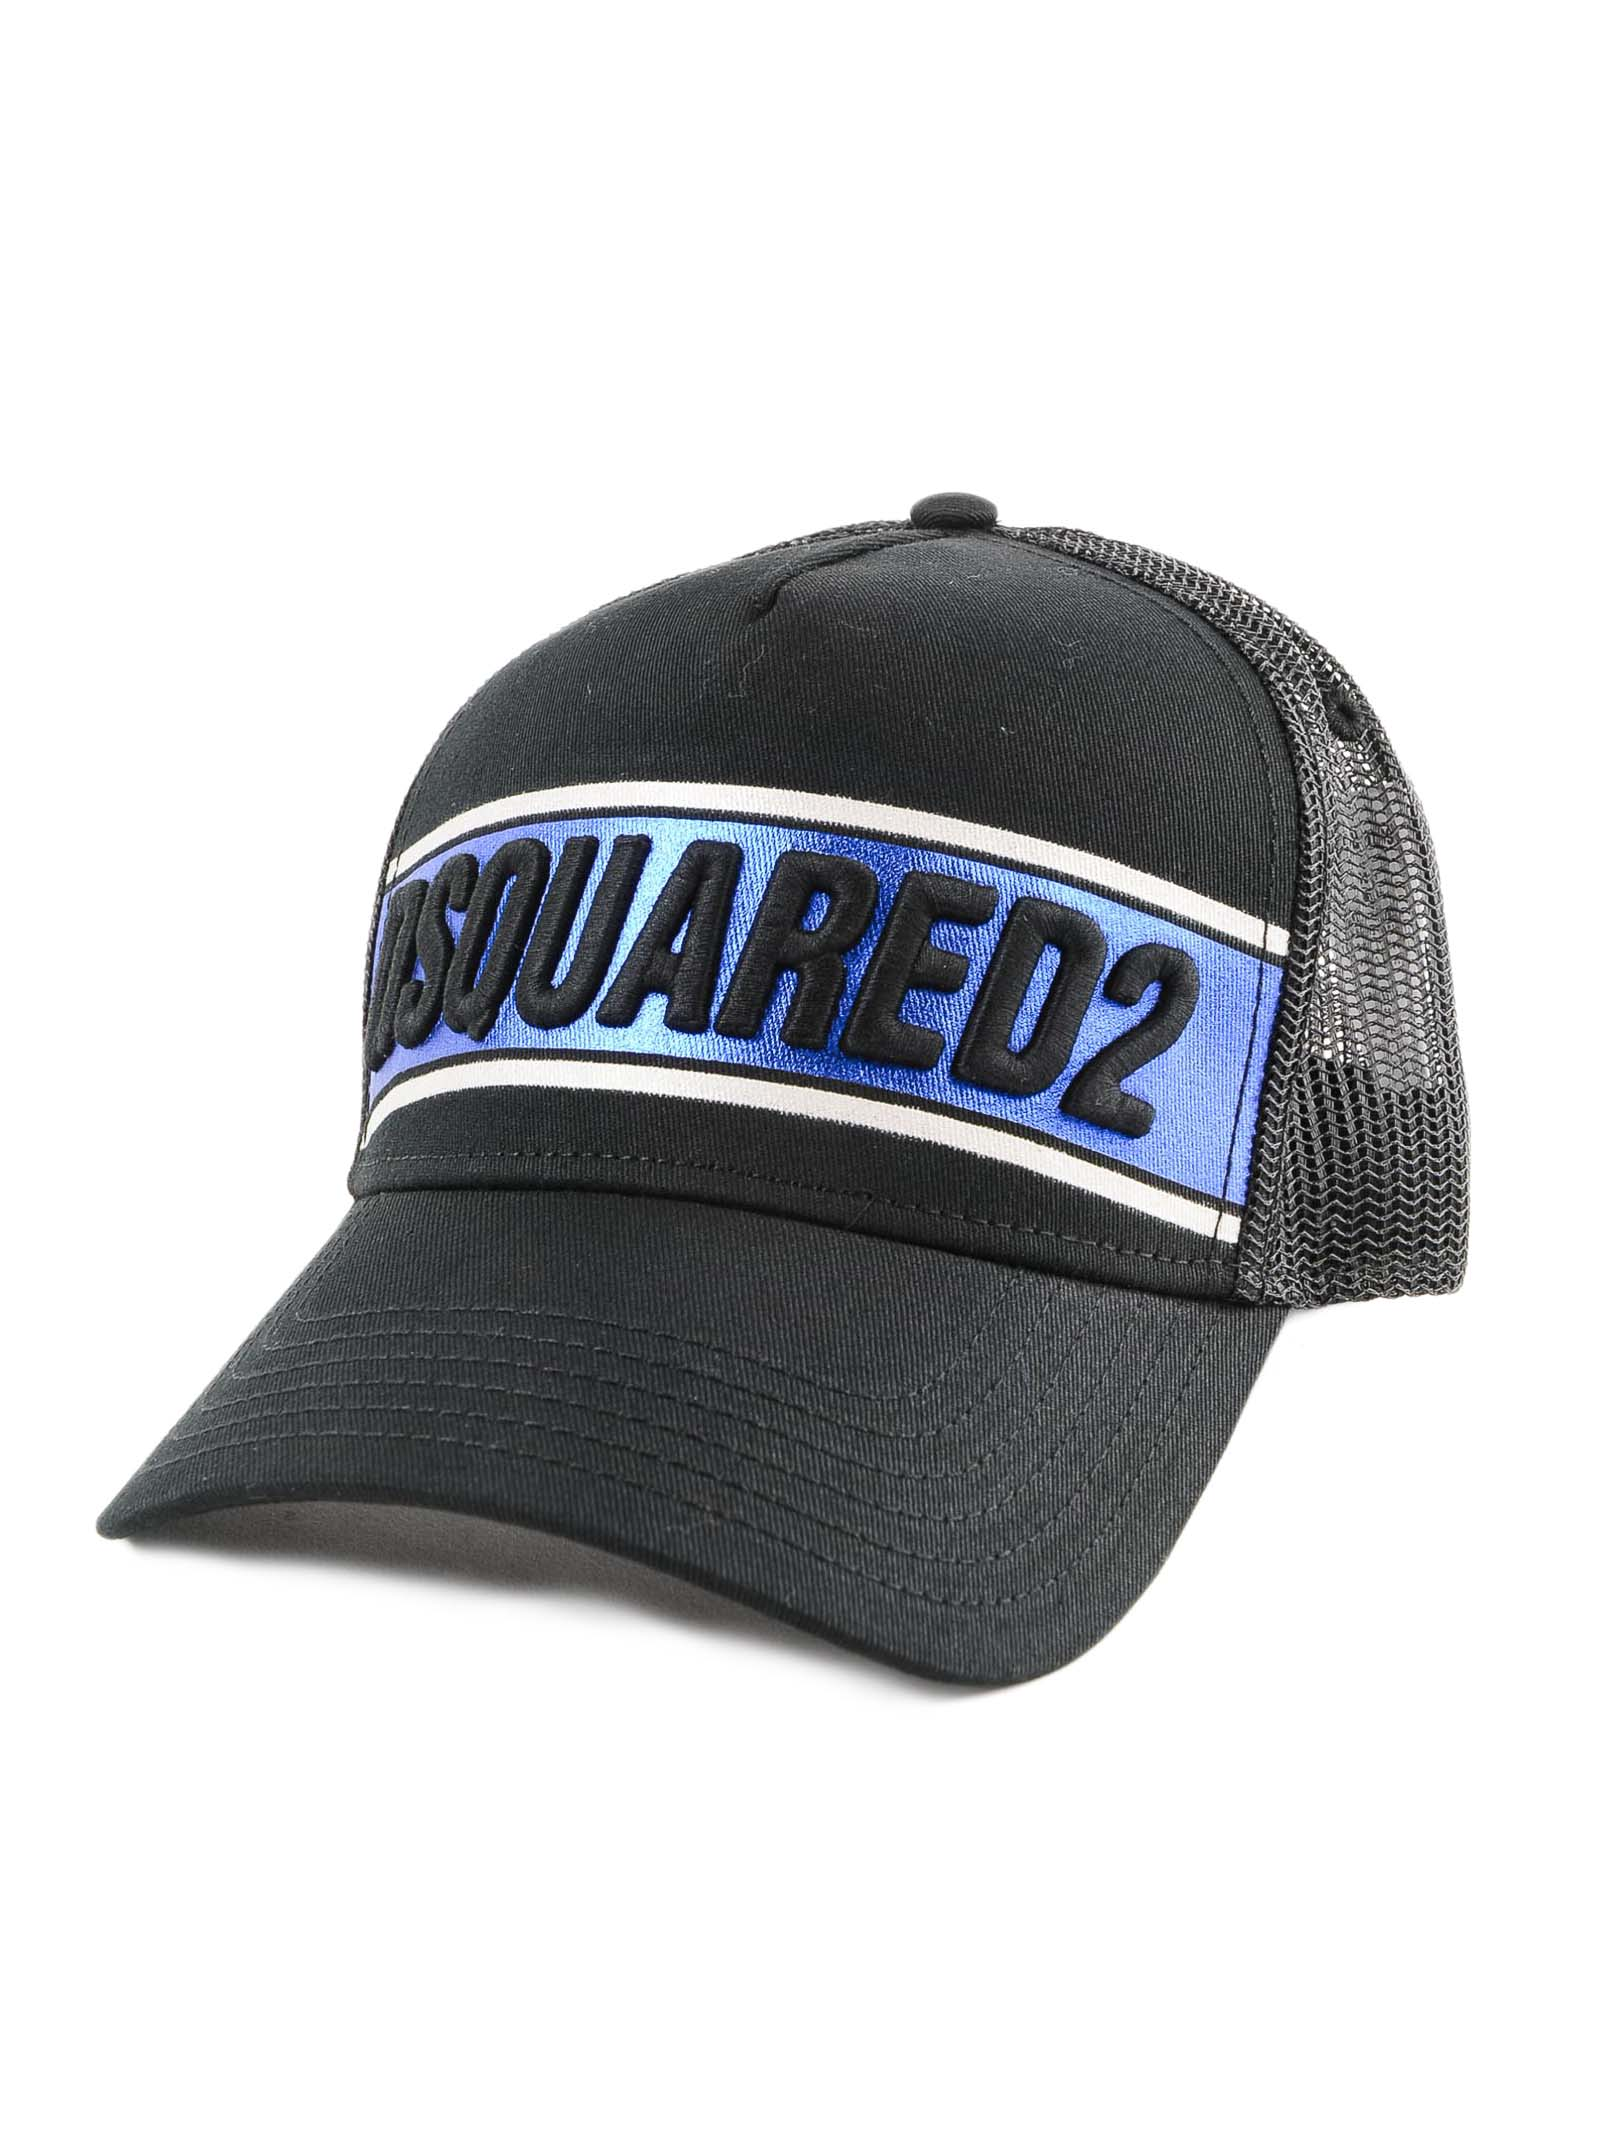 Dsquared X The Best Shops Baseball Cap